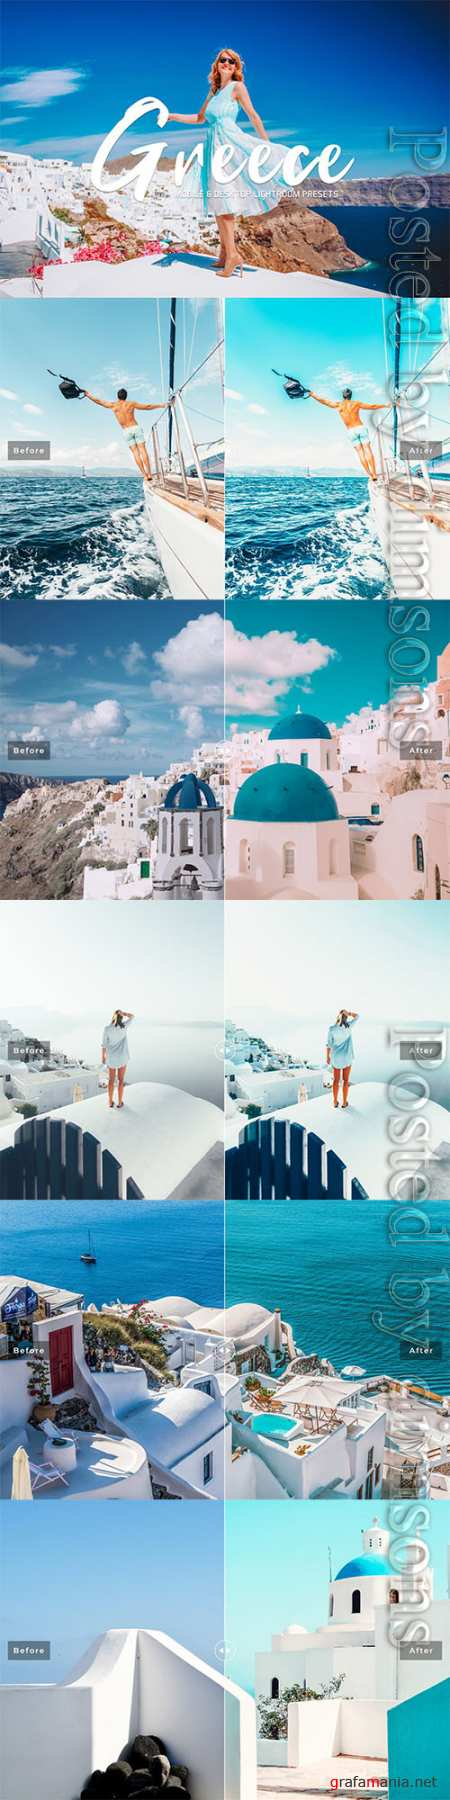 Greece Lightroom Presets Pack 3632848